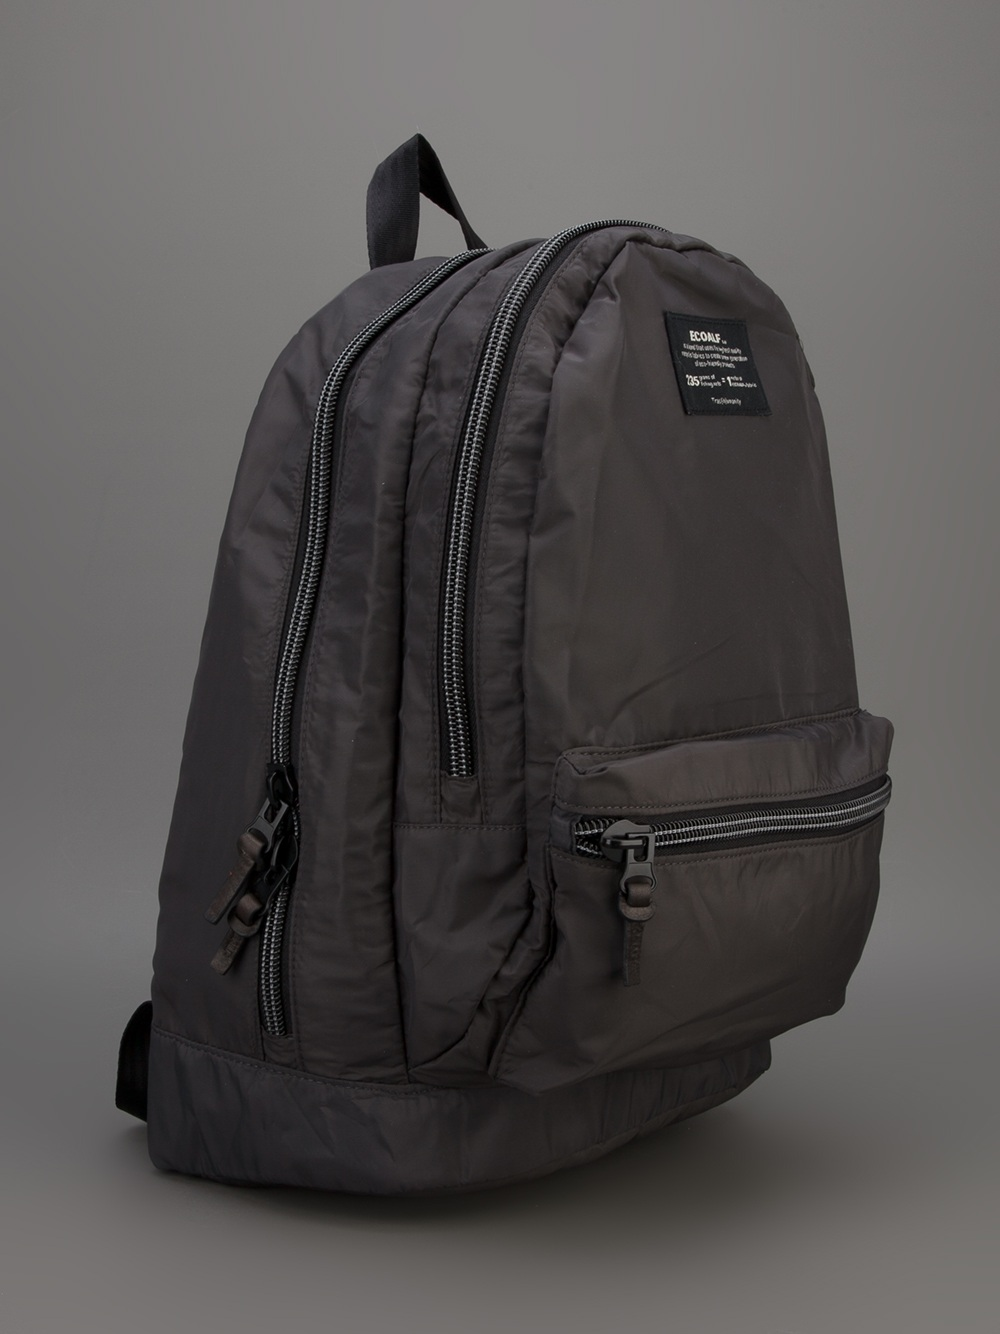 Ecoalf Munich Double Backpack Organizer In Gray For Men Lyst